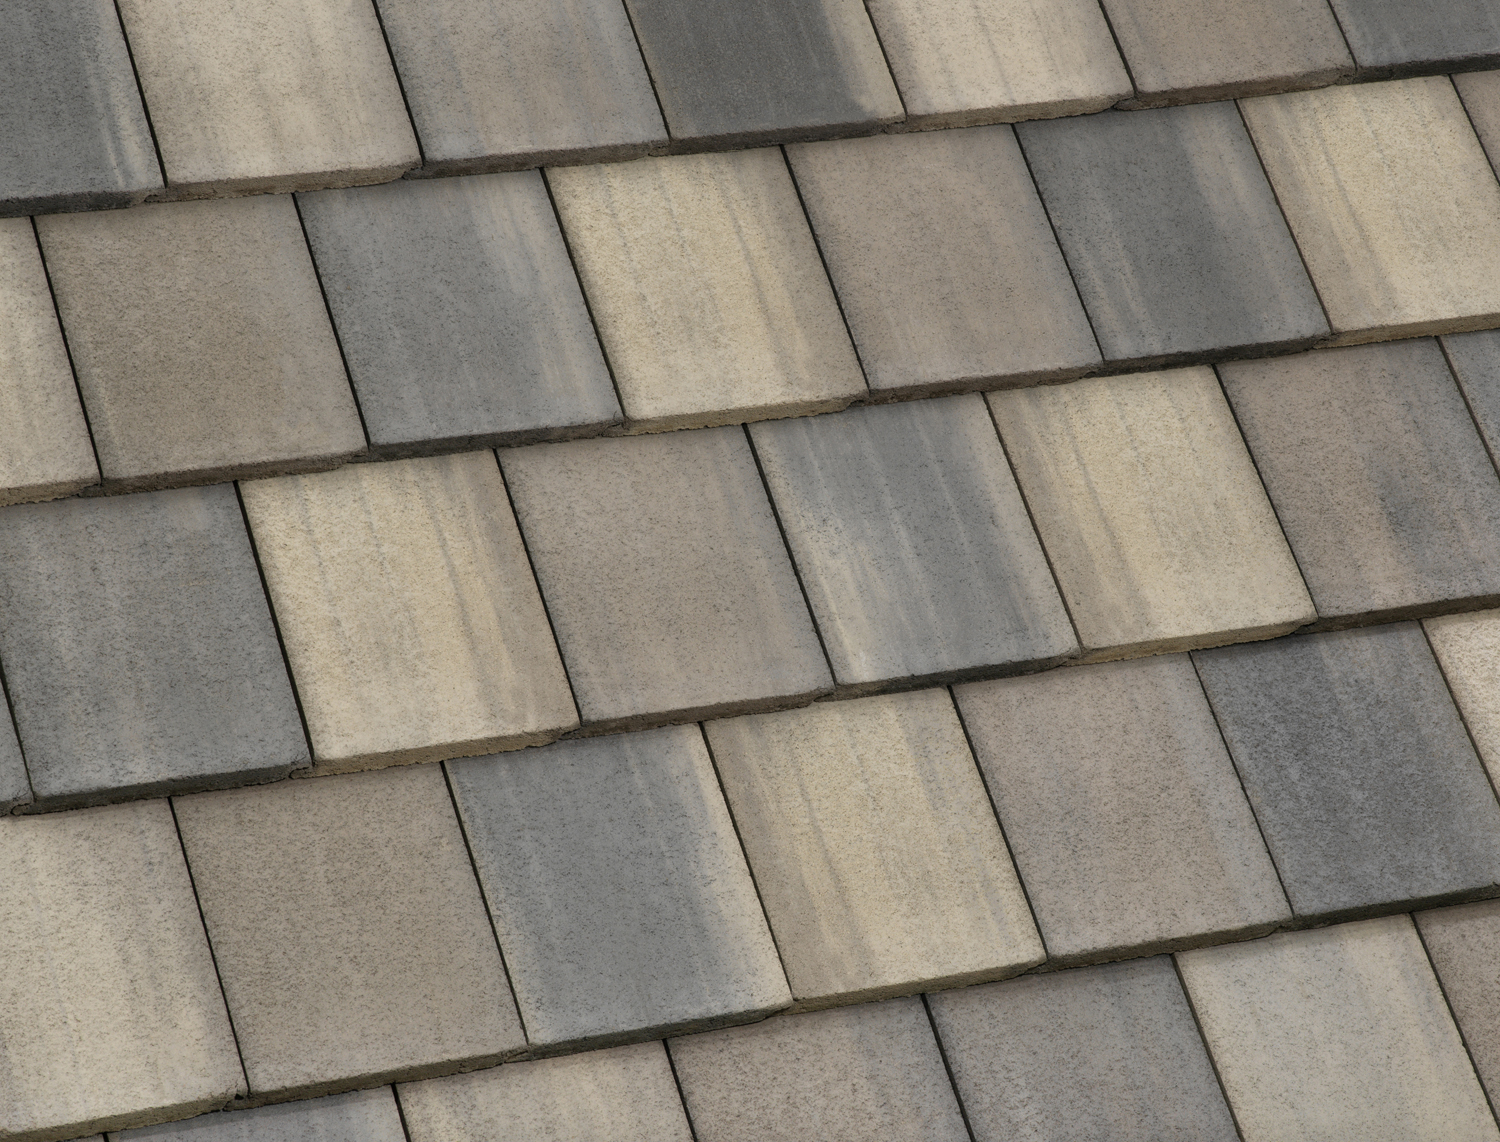 Scb 8827 Eagle Roofing